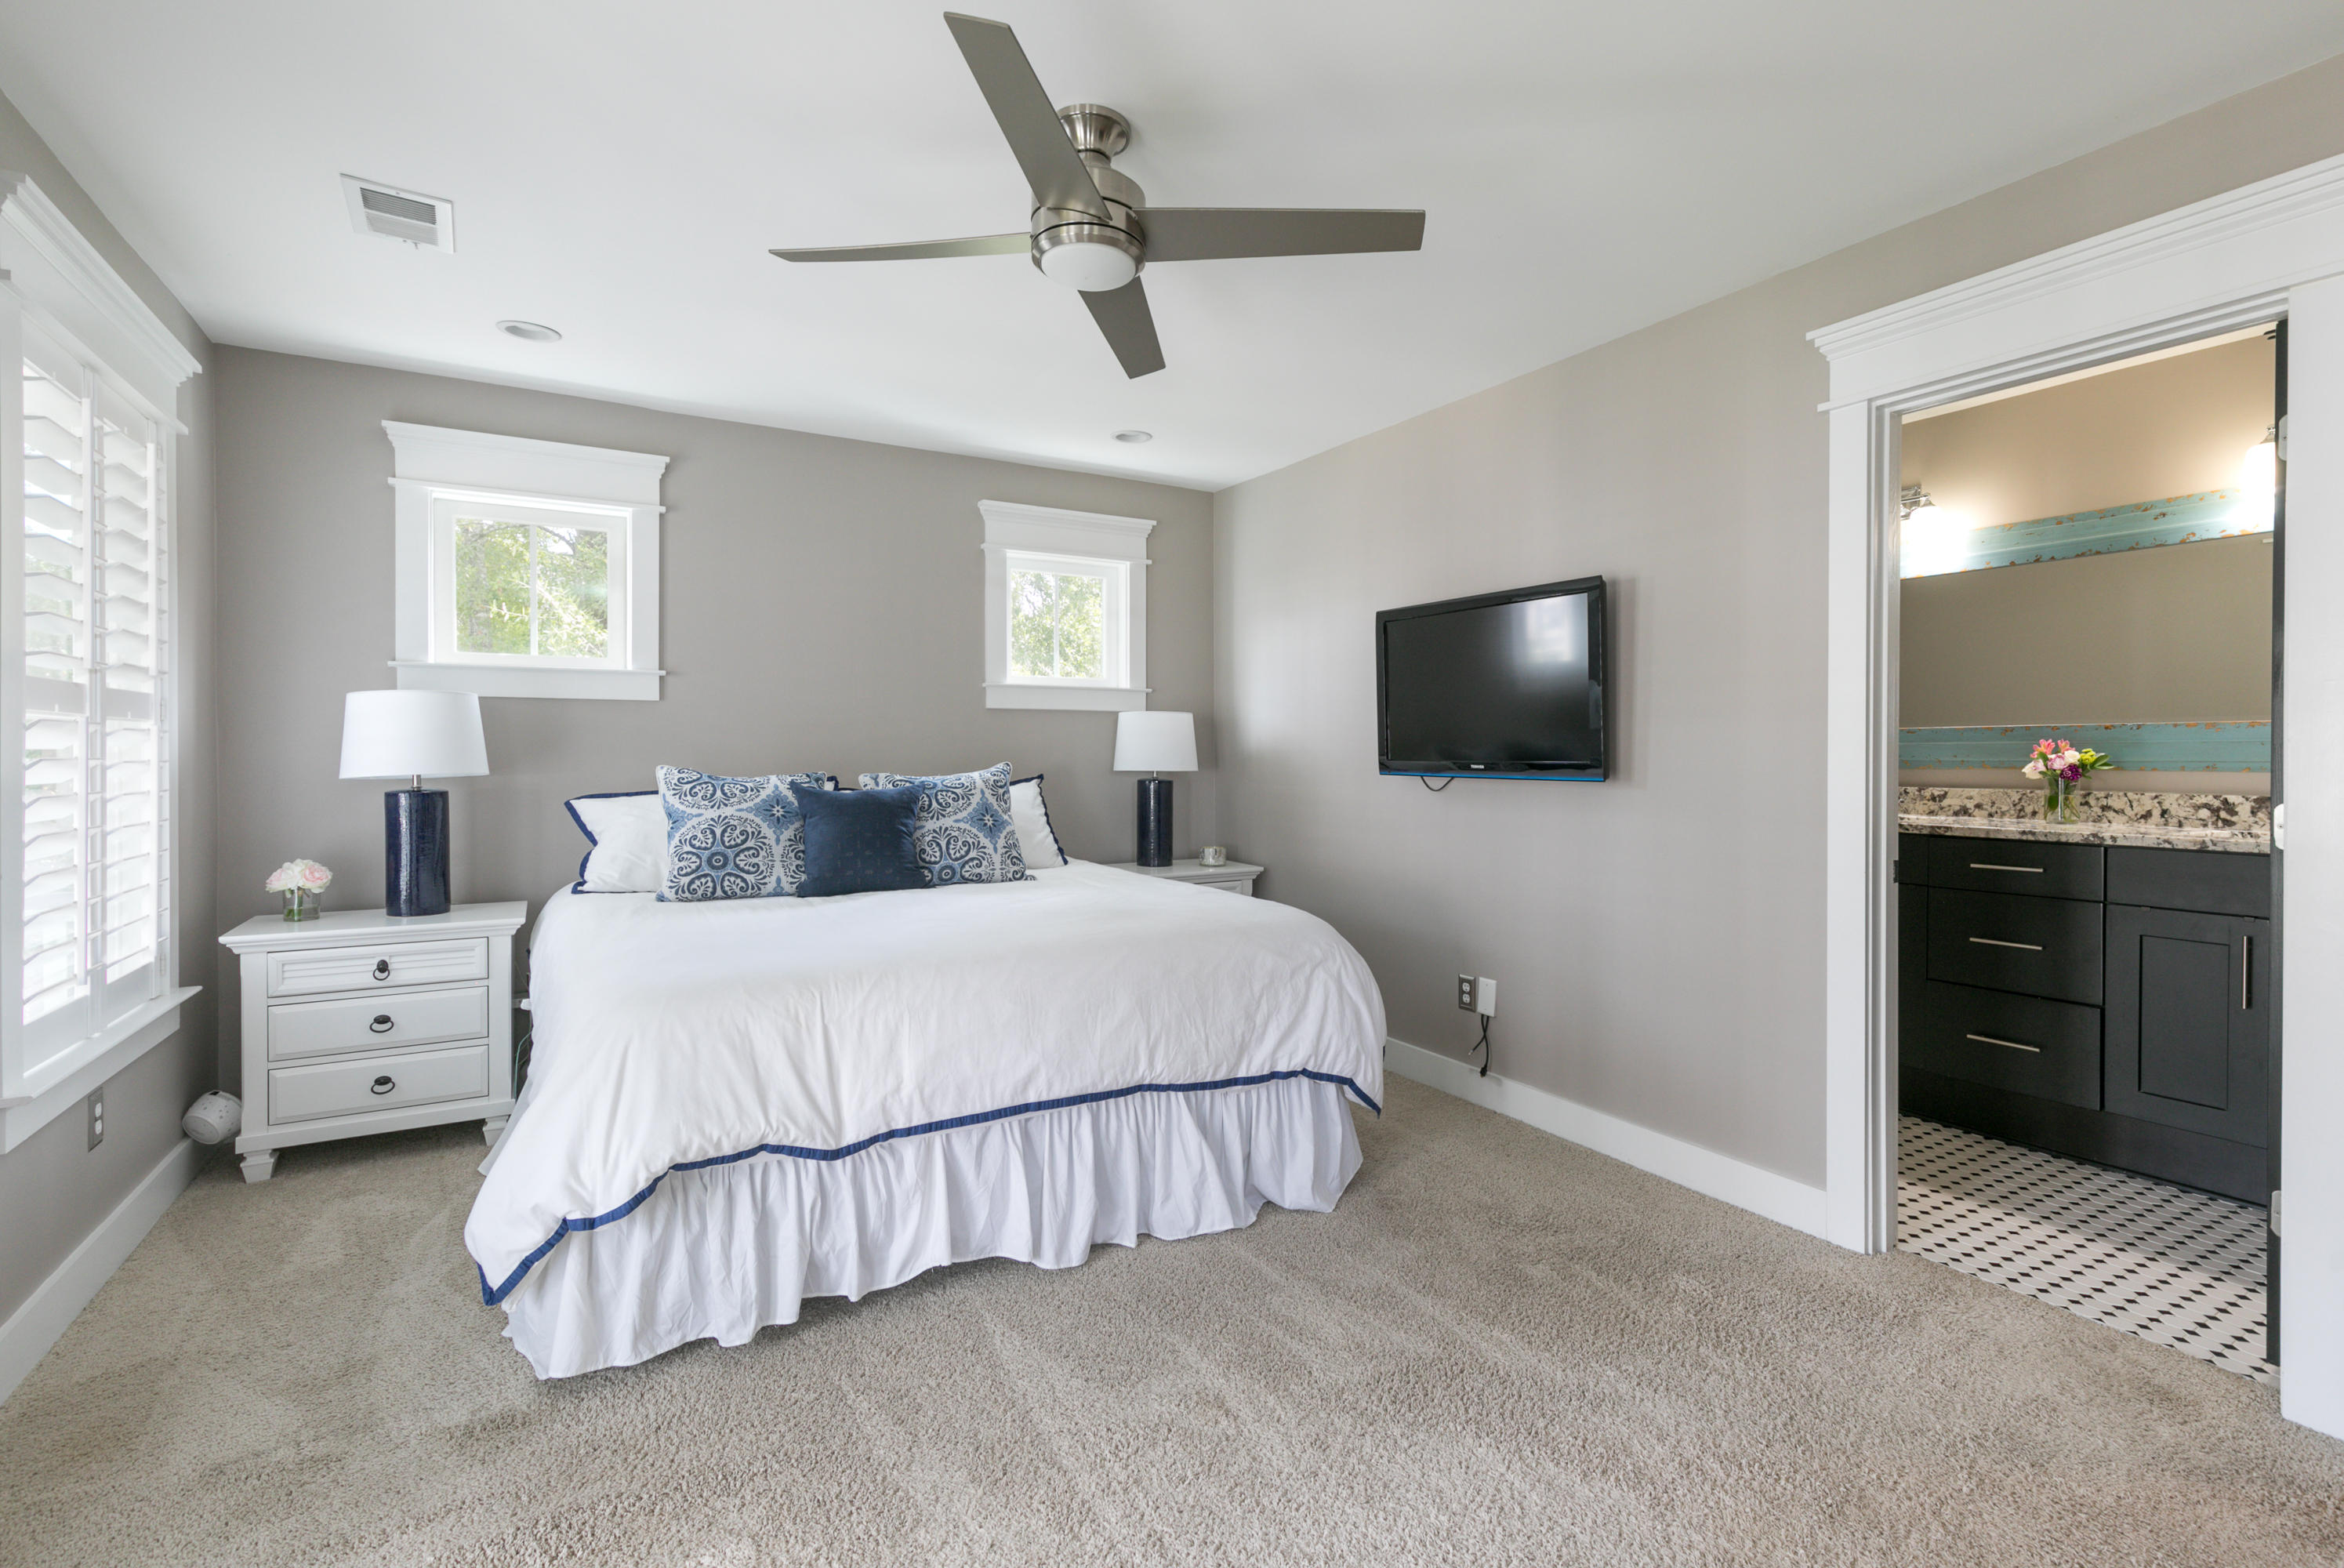 Wexford Park Homes For Sale - 1133 Wexford, Mount Pleasant, SC - 23